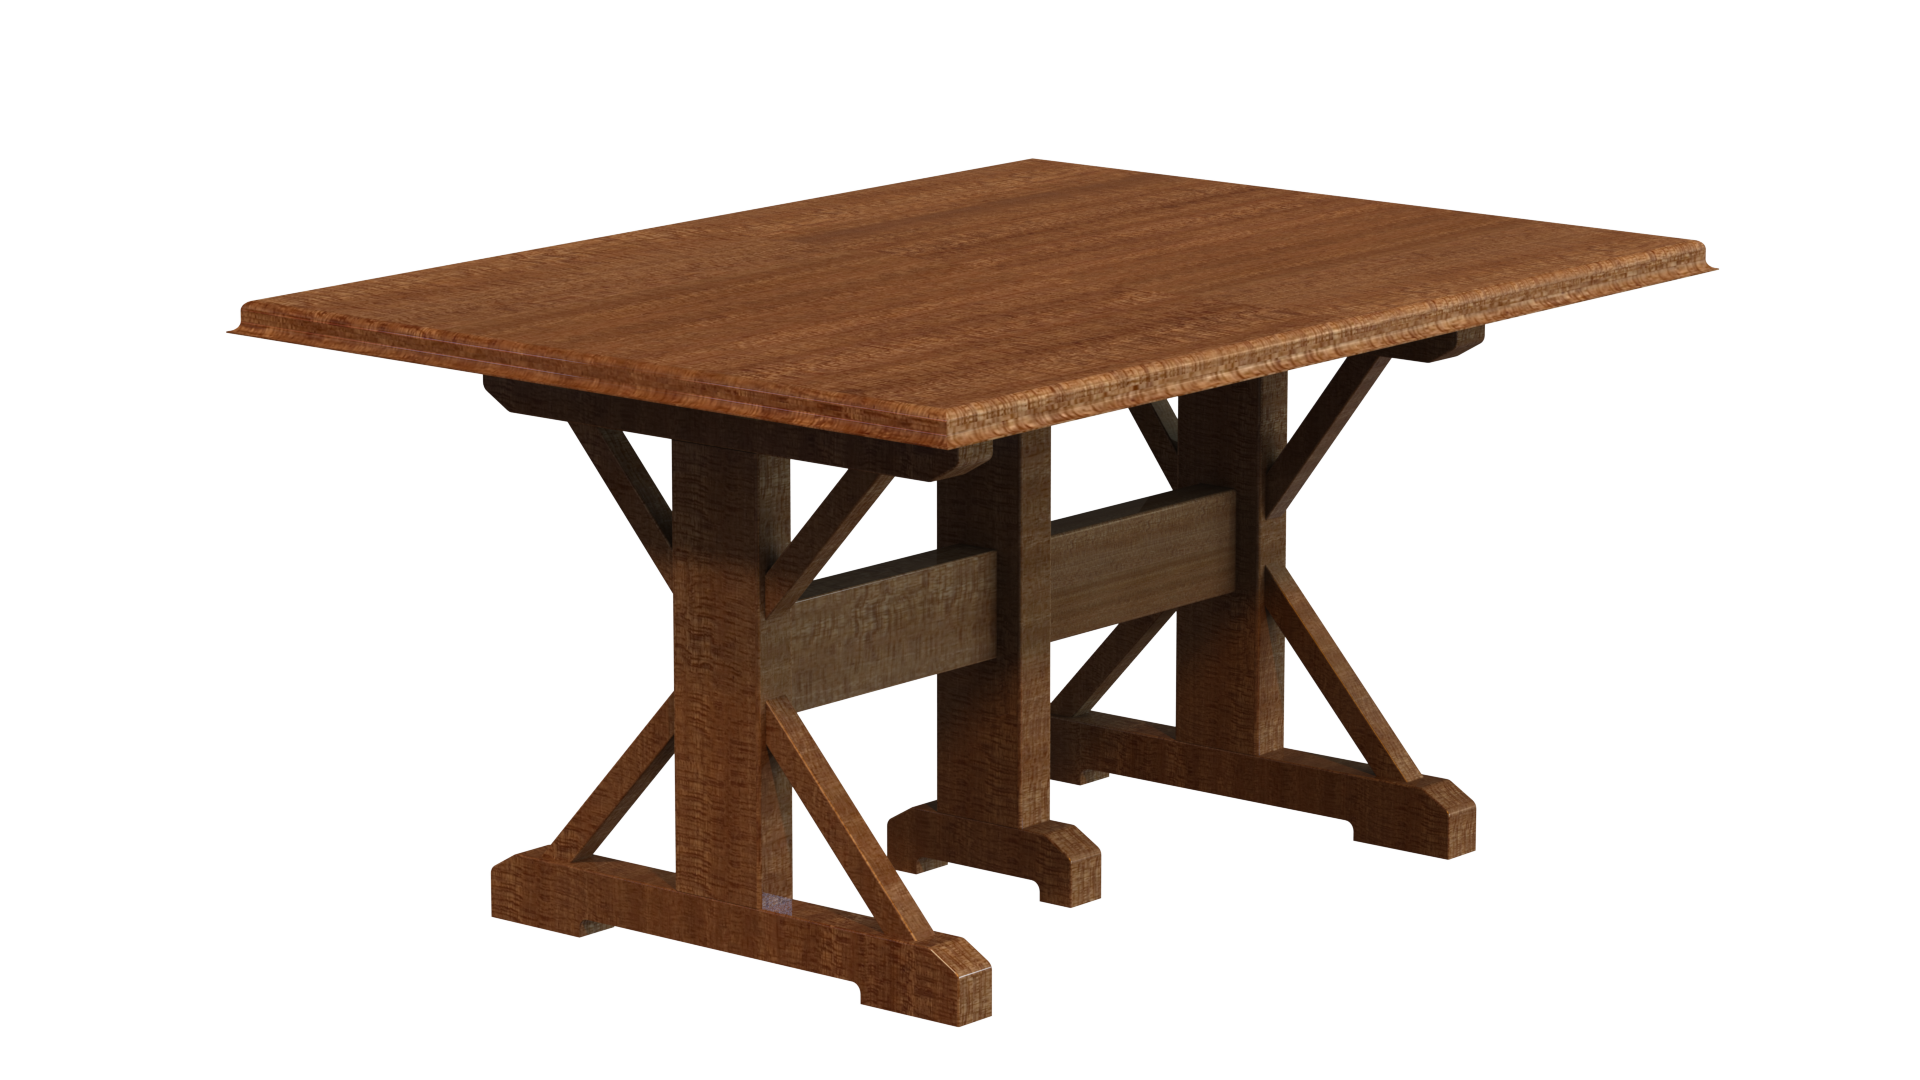 Table Hd Png Transparent Table Hd Png Images Pluspng